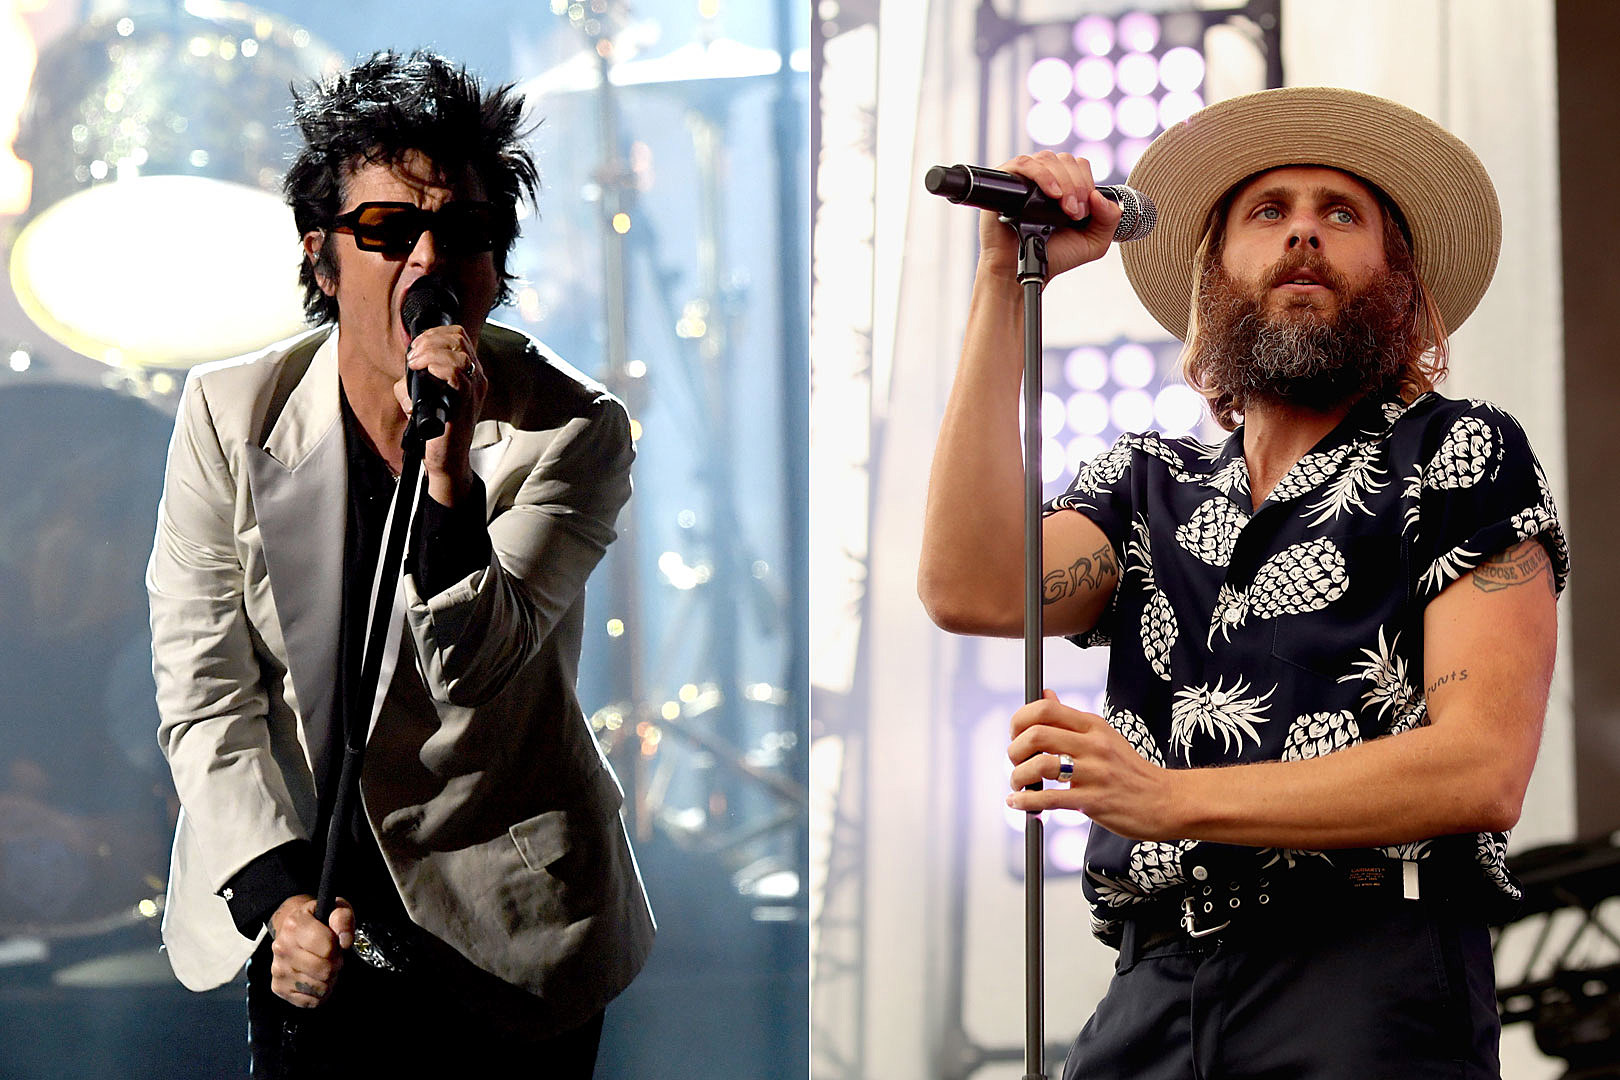 Green Day, AWOLNATION to Perform at NHL All-Star Weekend